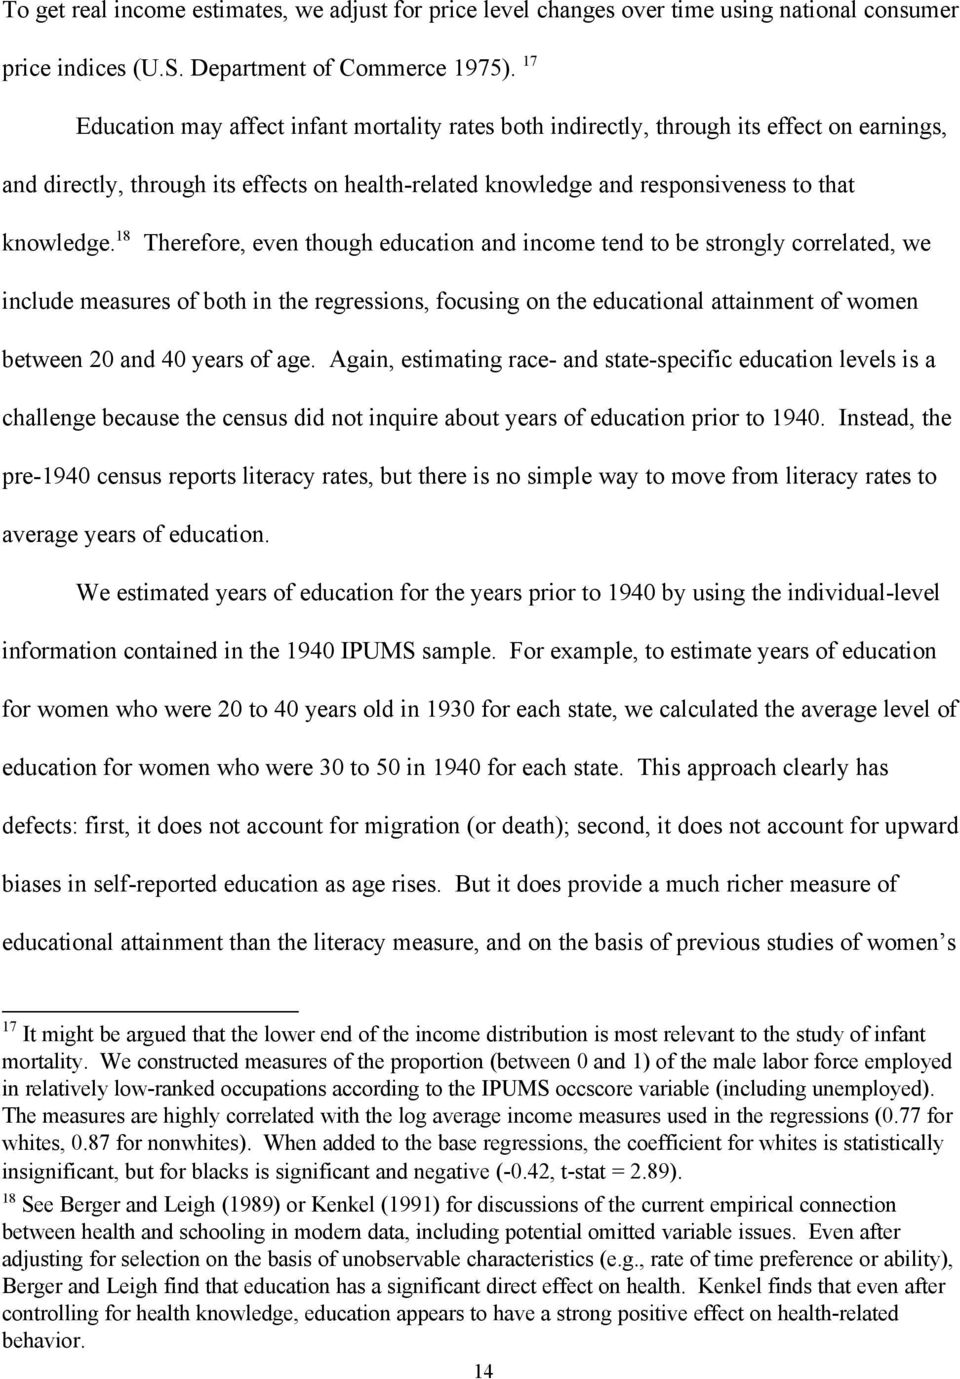 18 Therefore, even though education and income tend to be strongly correlated, we include measures of both in the regressions, focusing on the educational attainment of women between 20 and 40 years